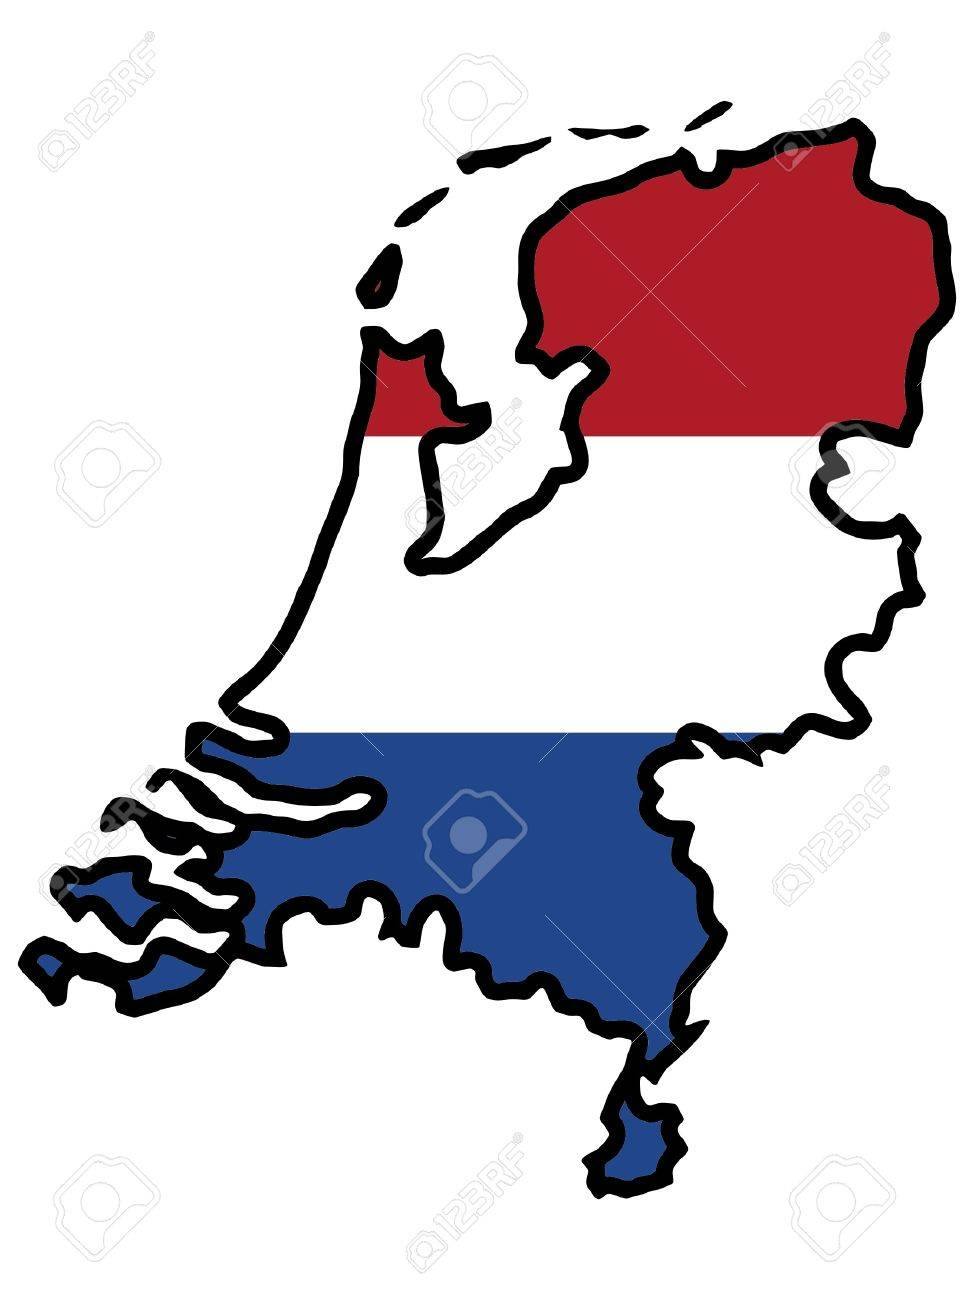 Illustration of flag in map of Netherlands Stock Vector - 11649043